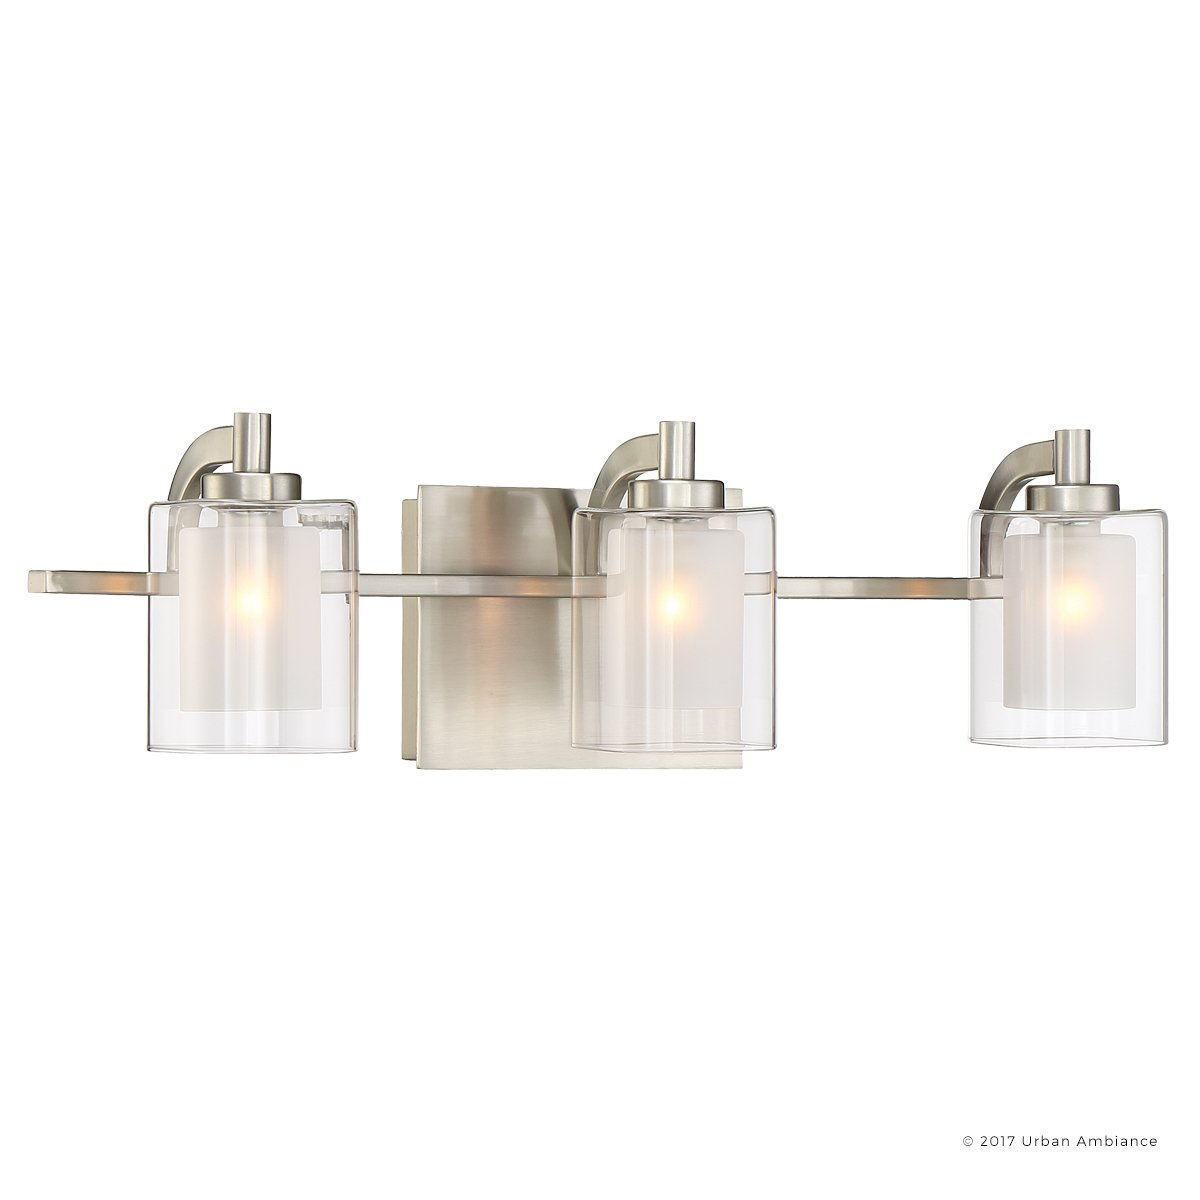 Luxury Modern Bathroom Vanity Light, Medium Size: 6''H x 21''W, with Posh Style Elements, Brushed Nickel Finish and Sand Blasted Inner, Clear Outer Glass, G9 LED Technology, UQL2403 by Urban Ambiance